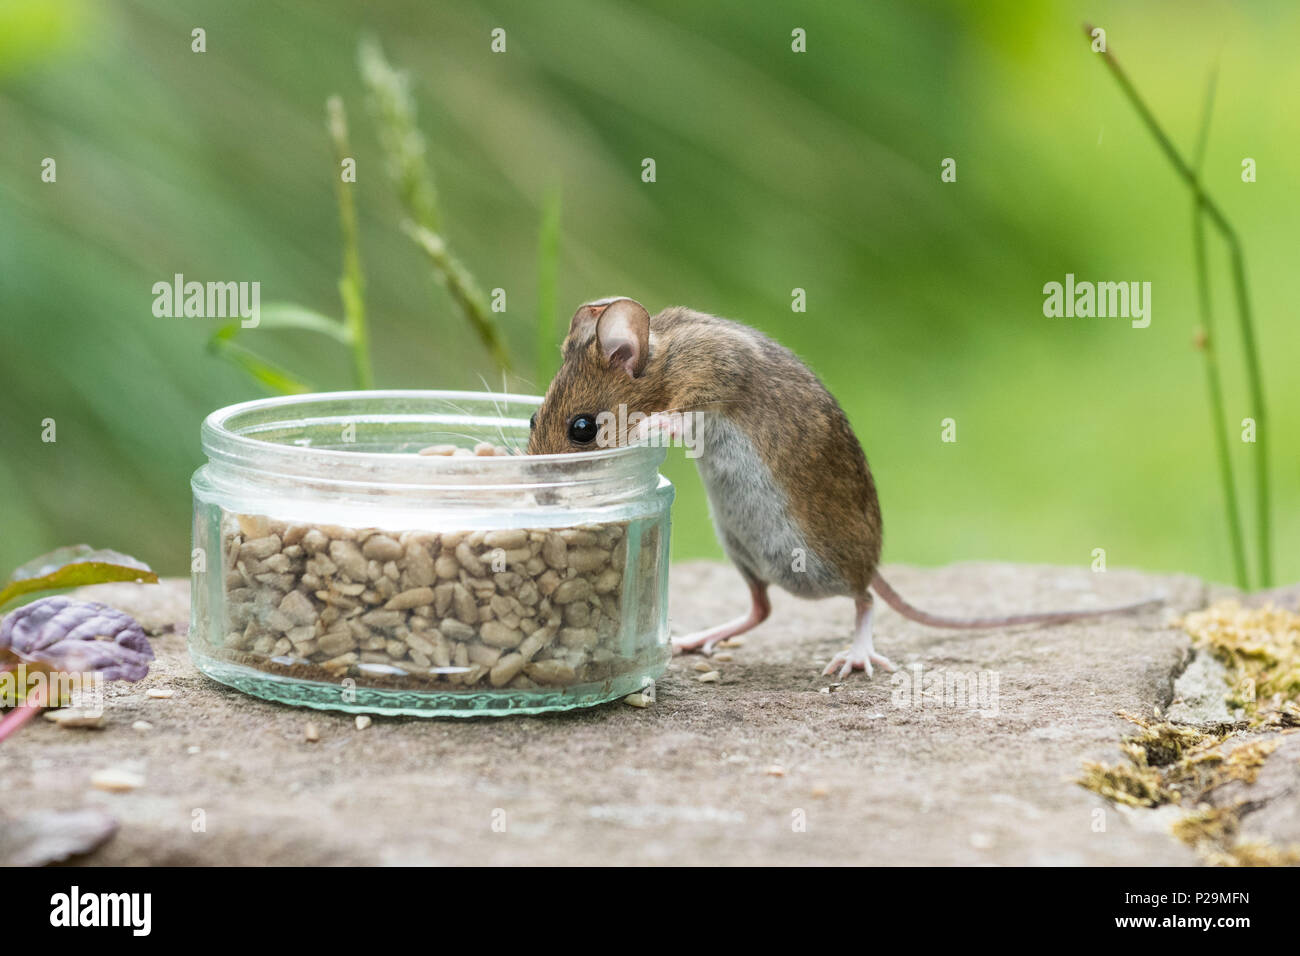 wood mouse or field mouse - apodemus sylvaticus - eating sunflower seeds put out for birds - Scotland, UK - Stock Image